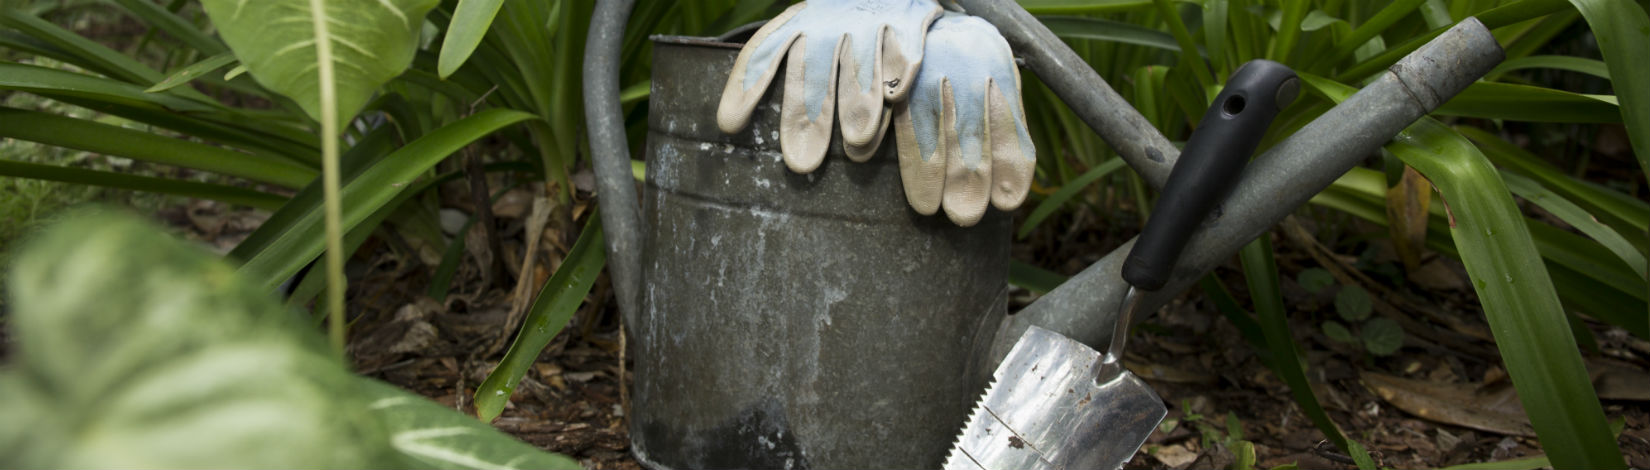 A watering can with gloves and a trowel, set against a vegetated background.